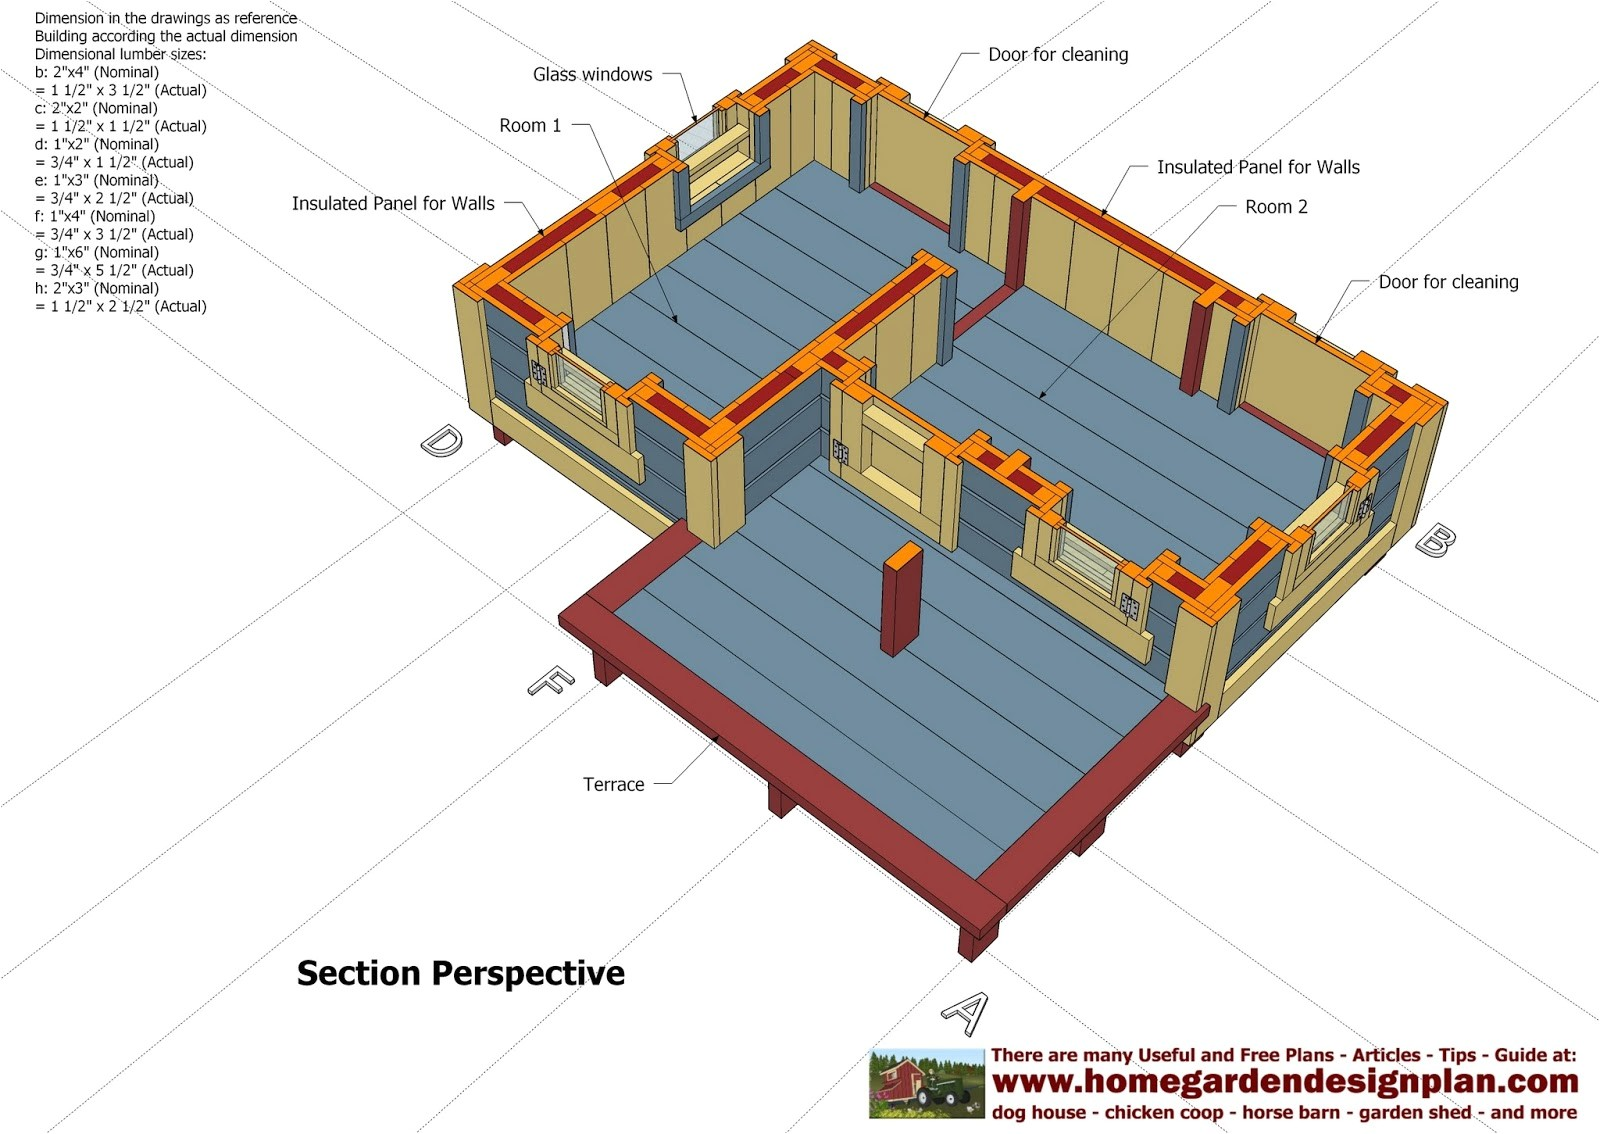 dh303 dog house plans dog house design